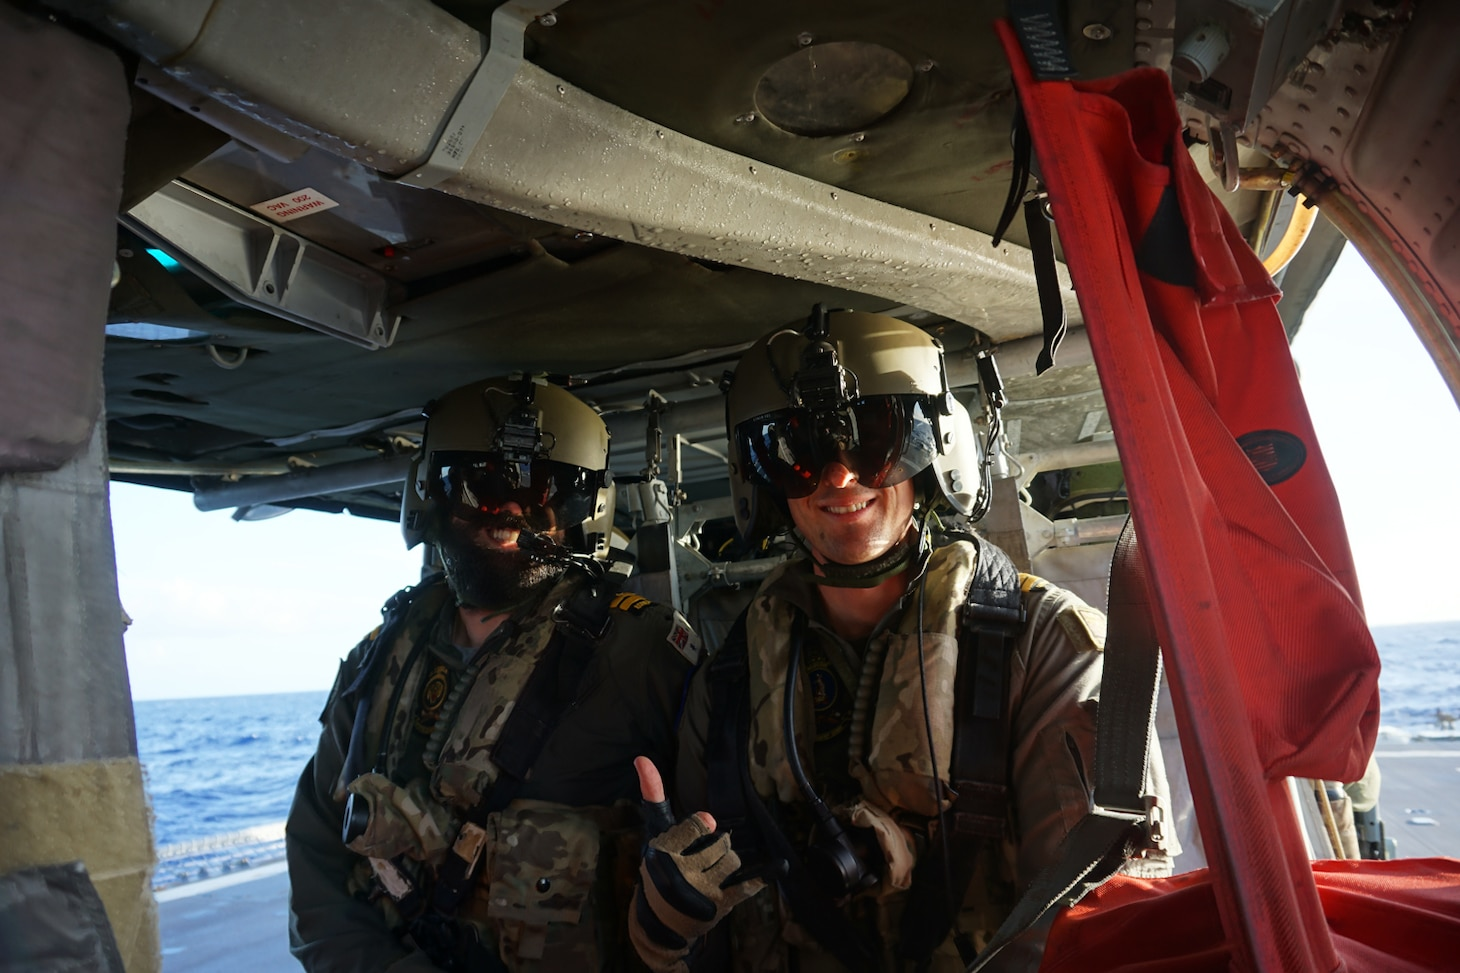 Senior leaders from Royal Australian Navy guided-missile frigate HMAS Melbourne (FFG 05) and Helicopter Sea Combat Squadron (HSC) 25 pause for a photo during visit conducted in conjunction with deck landing qualifications between the two units.  HSC-25 provides a multi-mission rotary wing capability for units in the U.S. 7th Fleet area of operations and maintains a Guam-based 24-hour search-and-rescue and medical evacuation capability, directly supporting U.S. Coast Guard and Joint Region Marianas. HSC-25 is the Navy's only forward-deployed MH-60S expeditionary squadron.